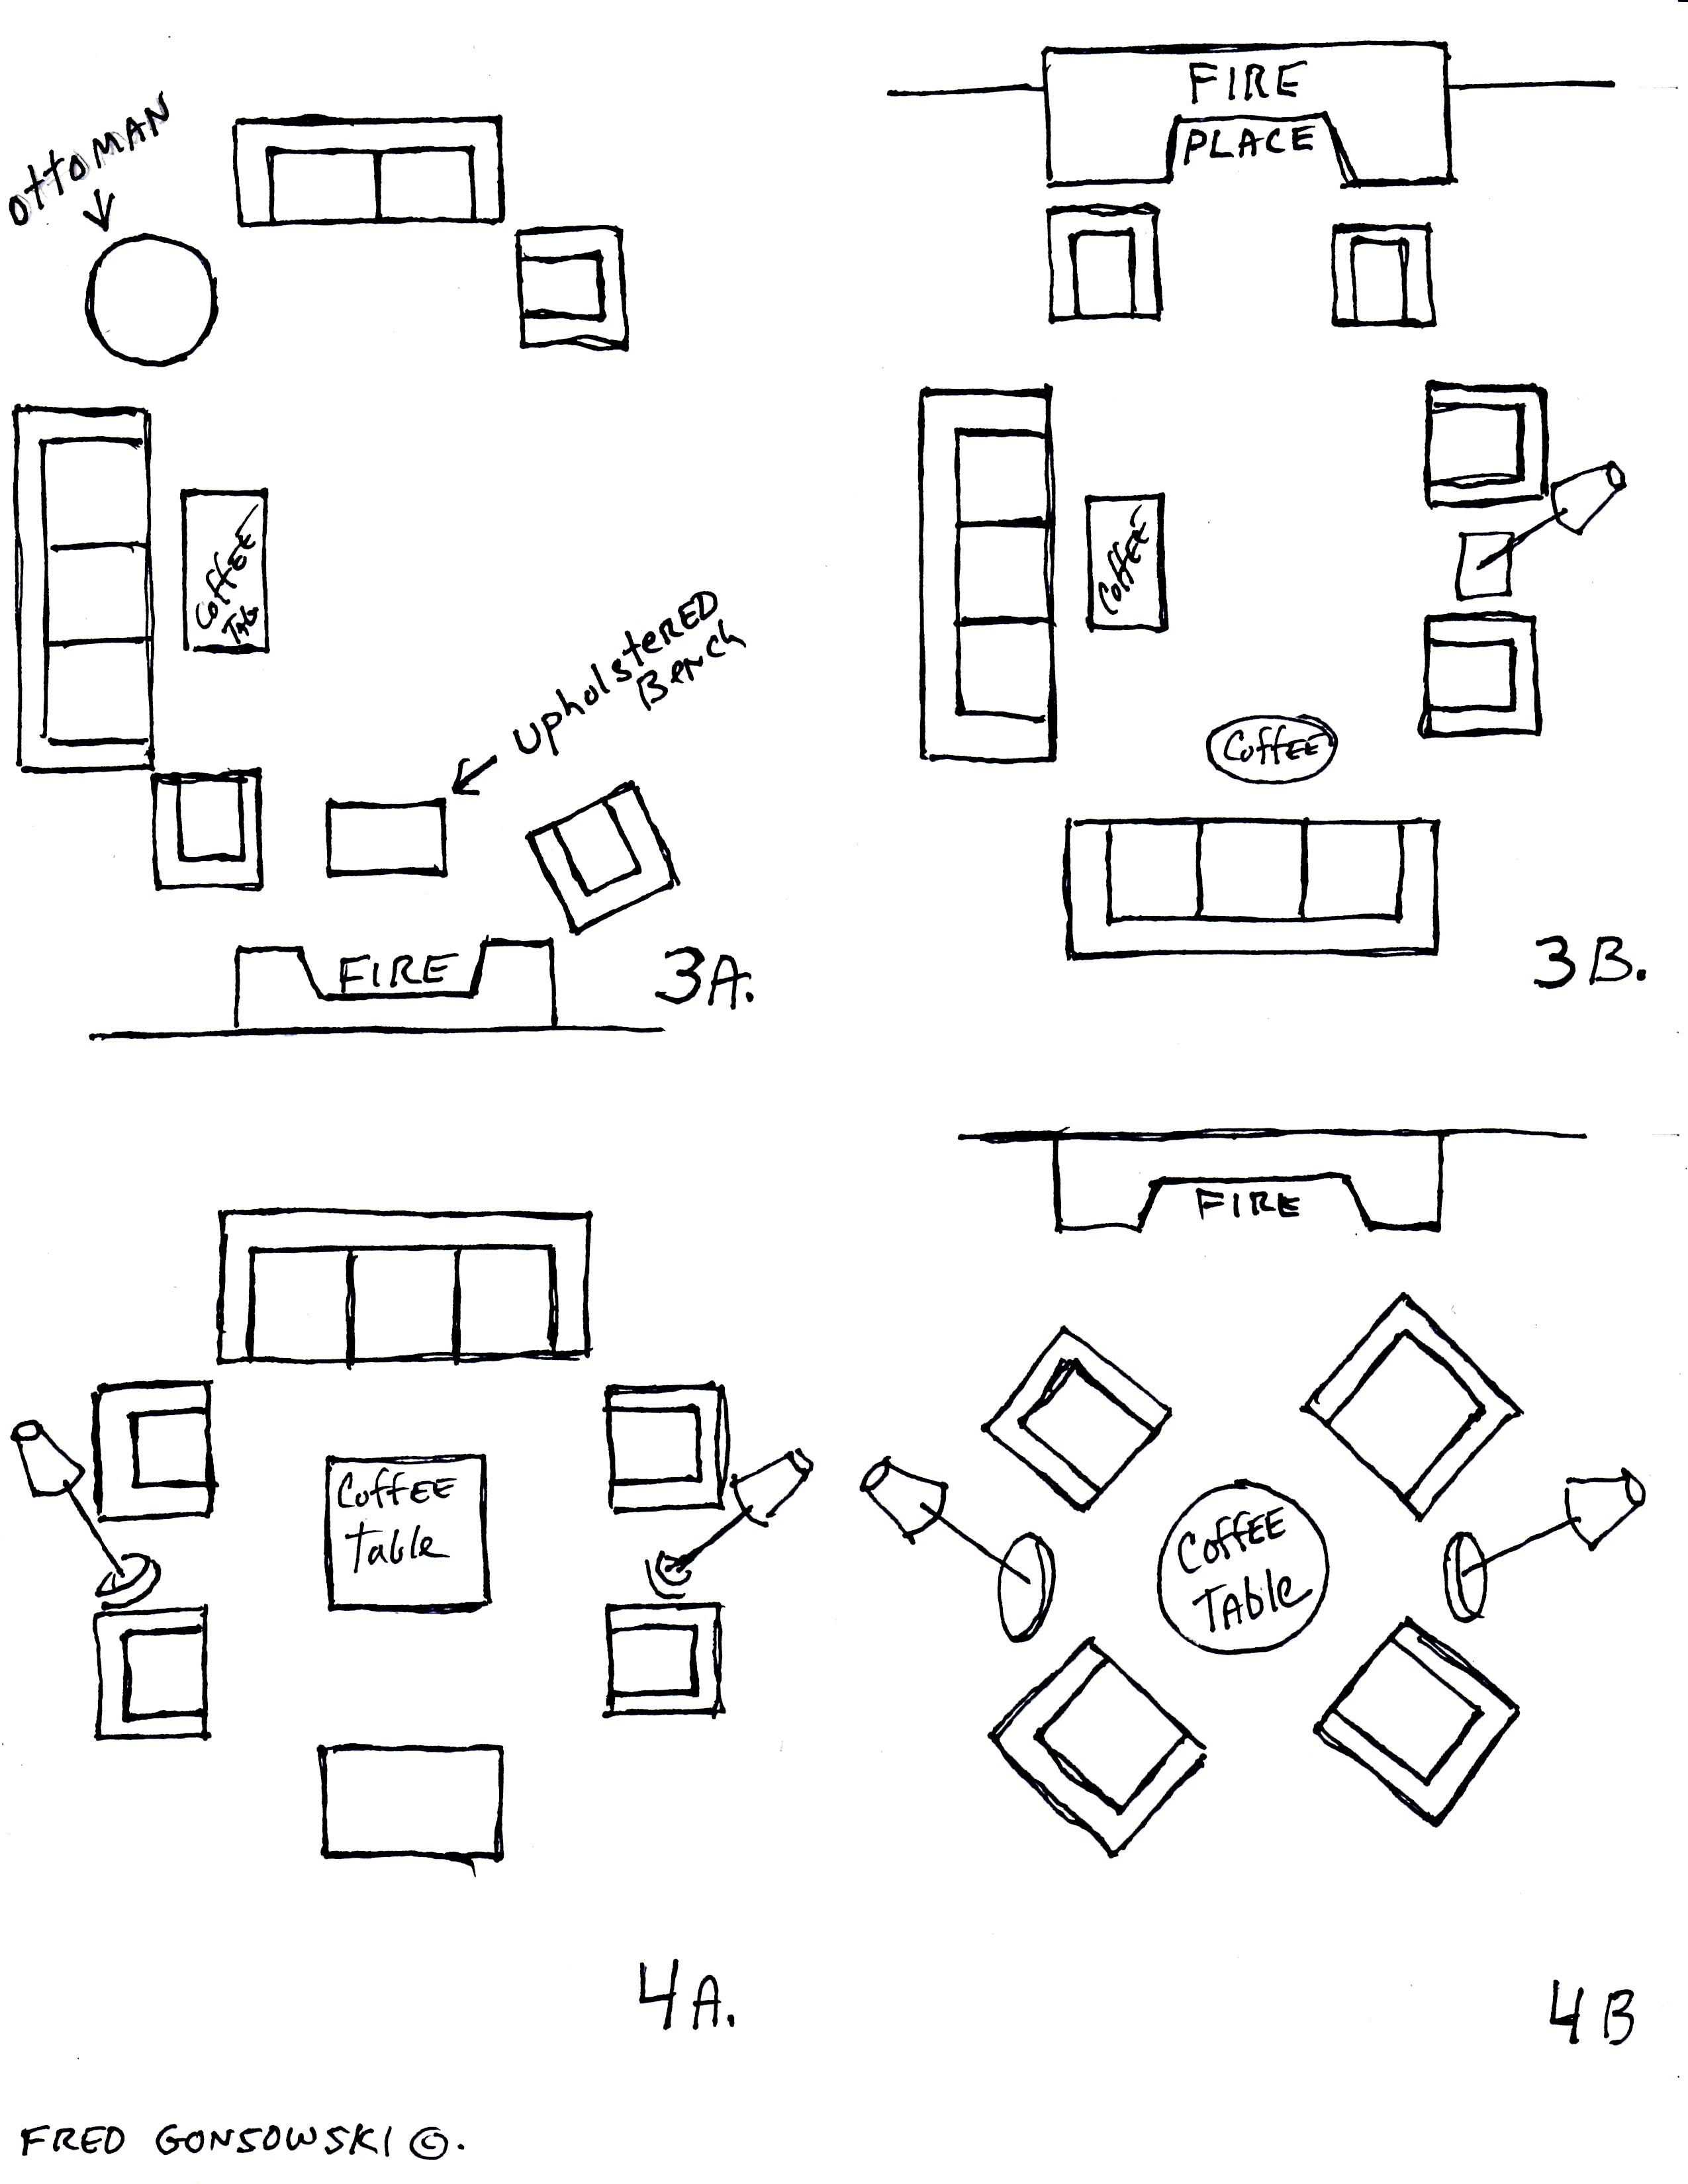 Room Design Layout Templates: Apartments:Drop Dead Gorgeous Placement Furniture The